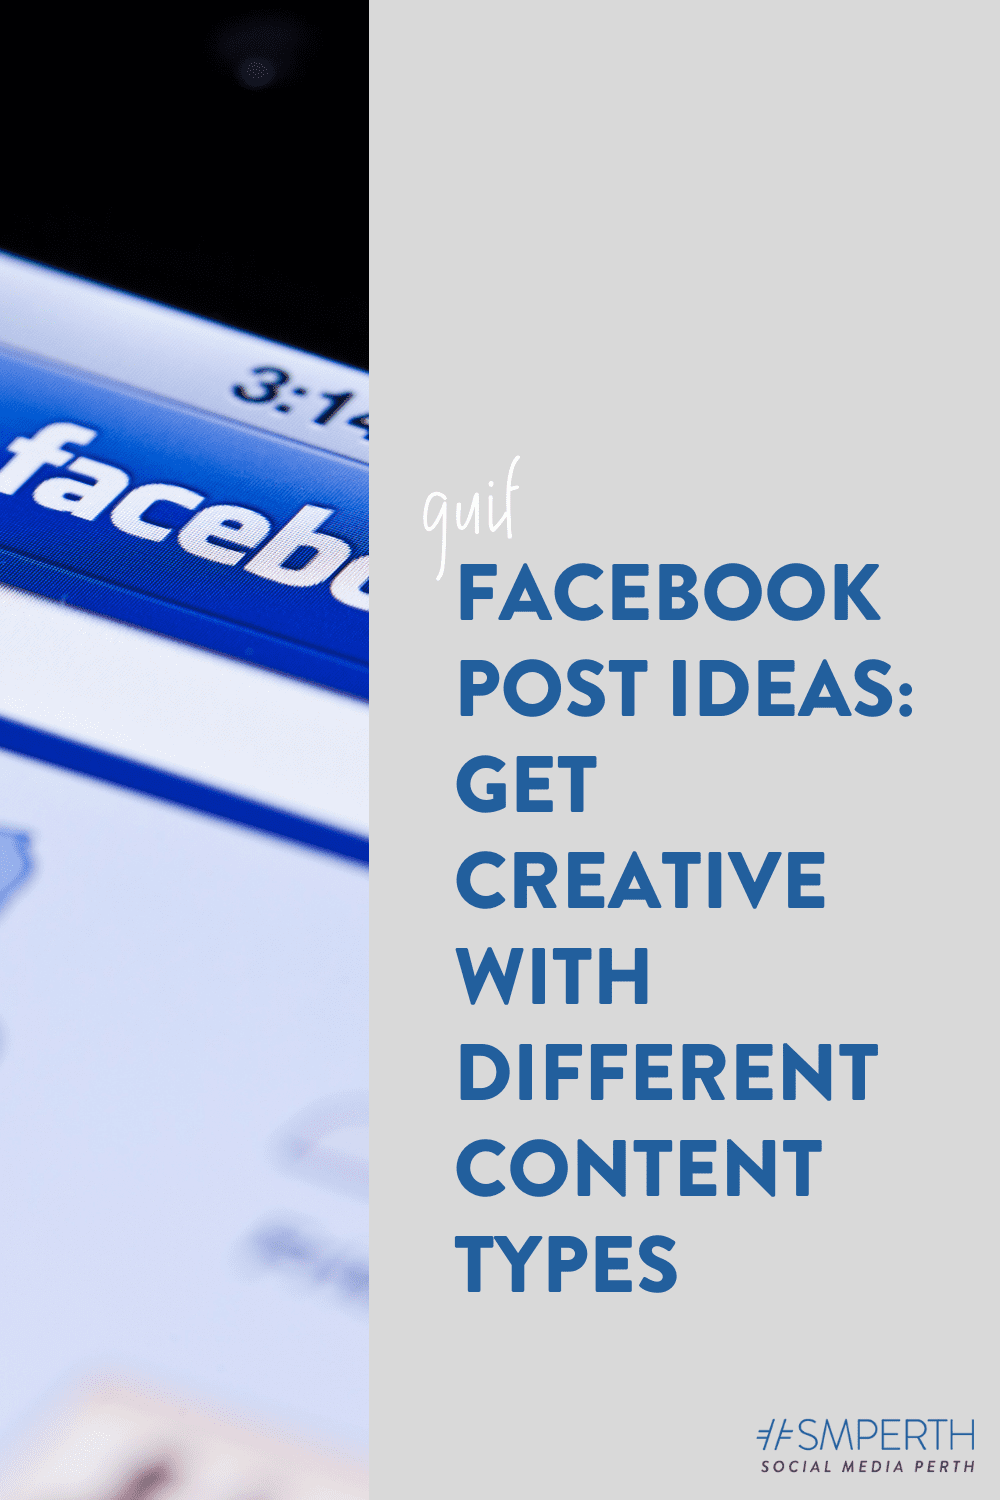 Facebook Post Types for Your Business in 2021